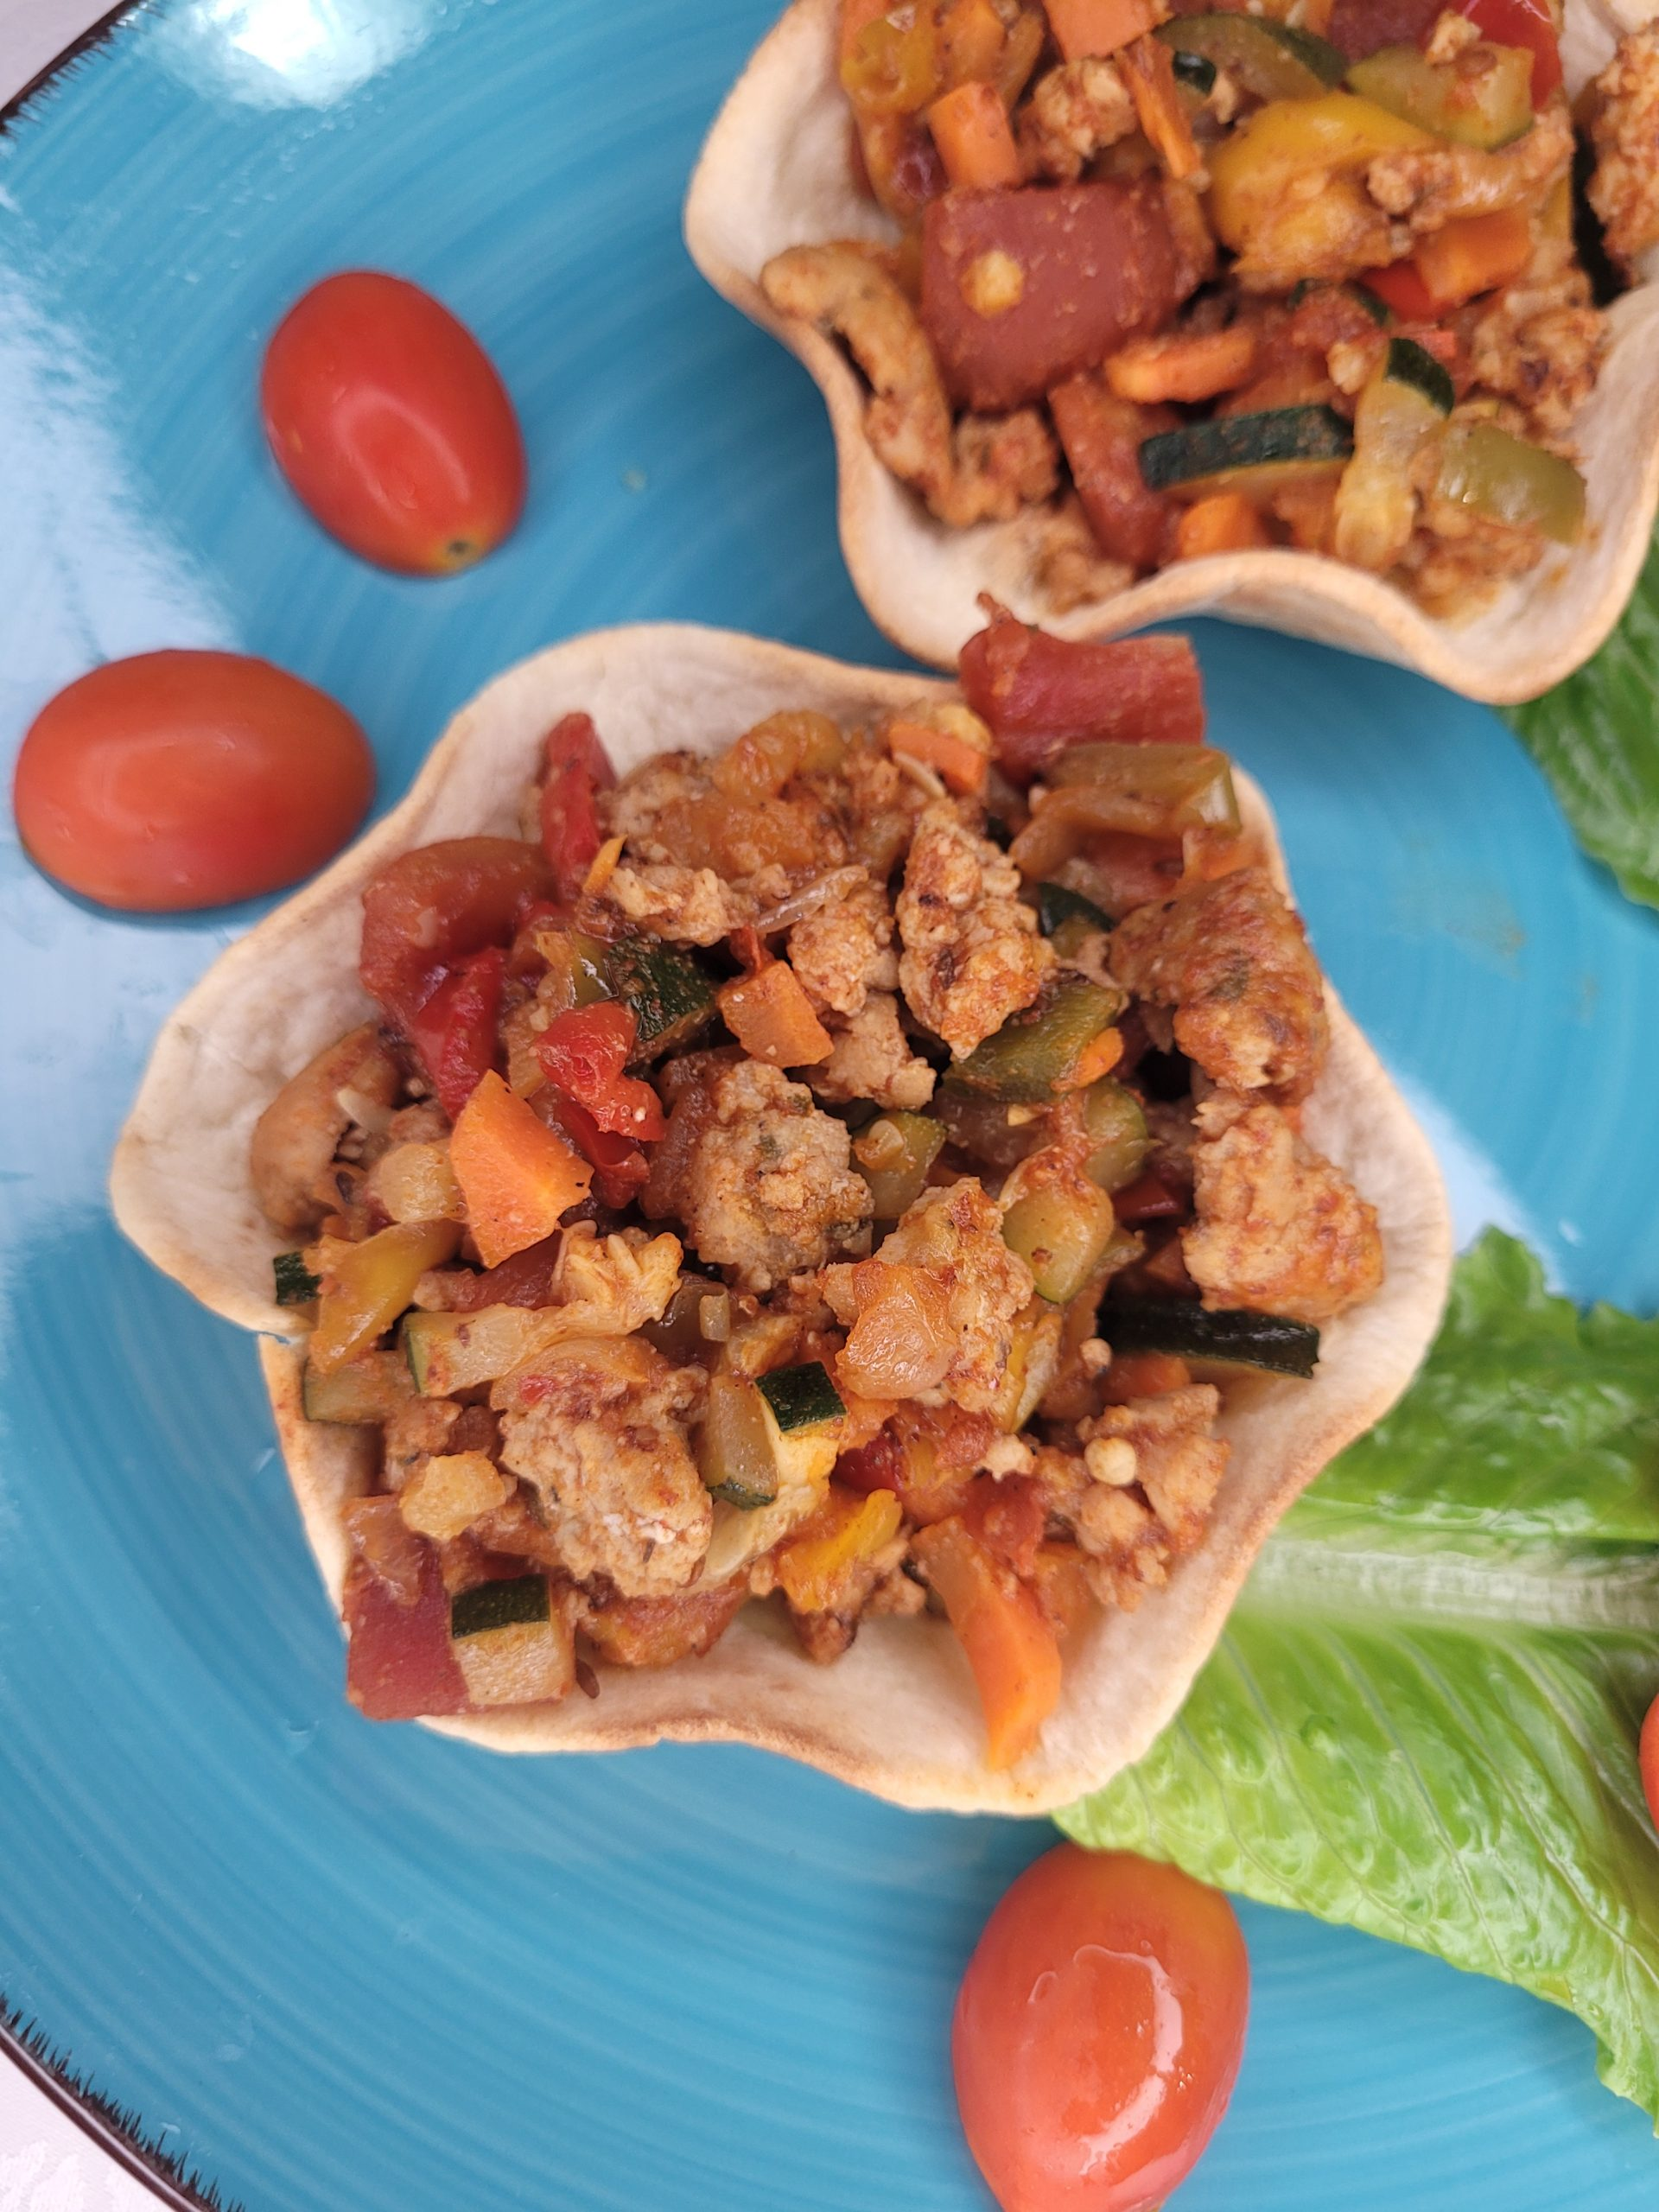 keto-friendly ground chicken and vegetables